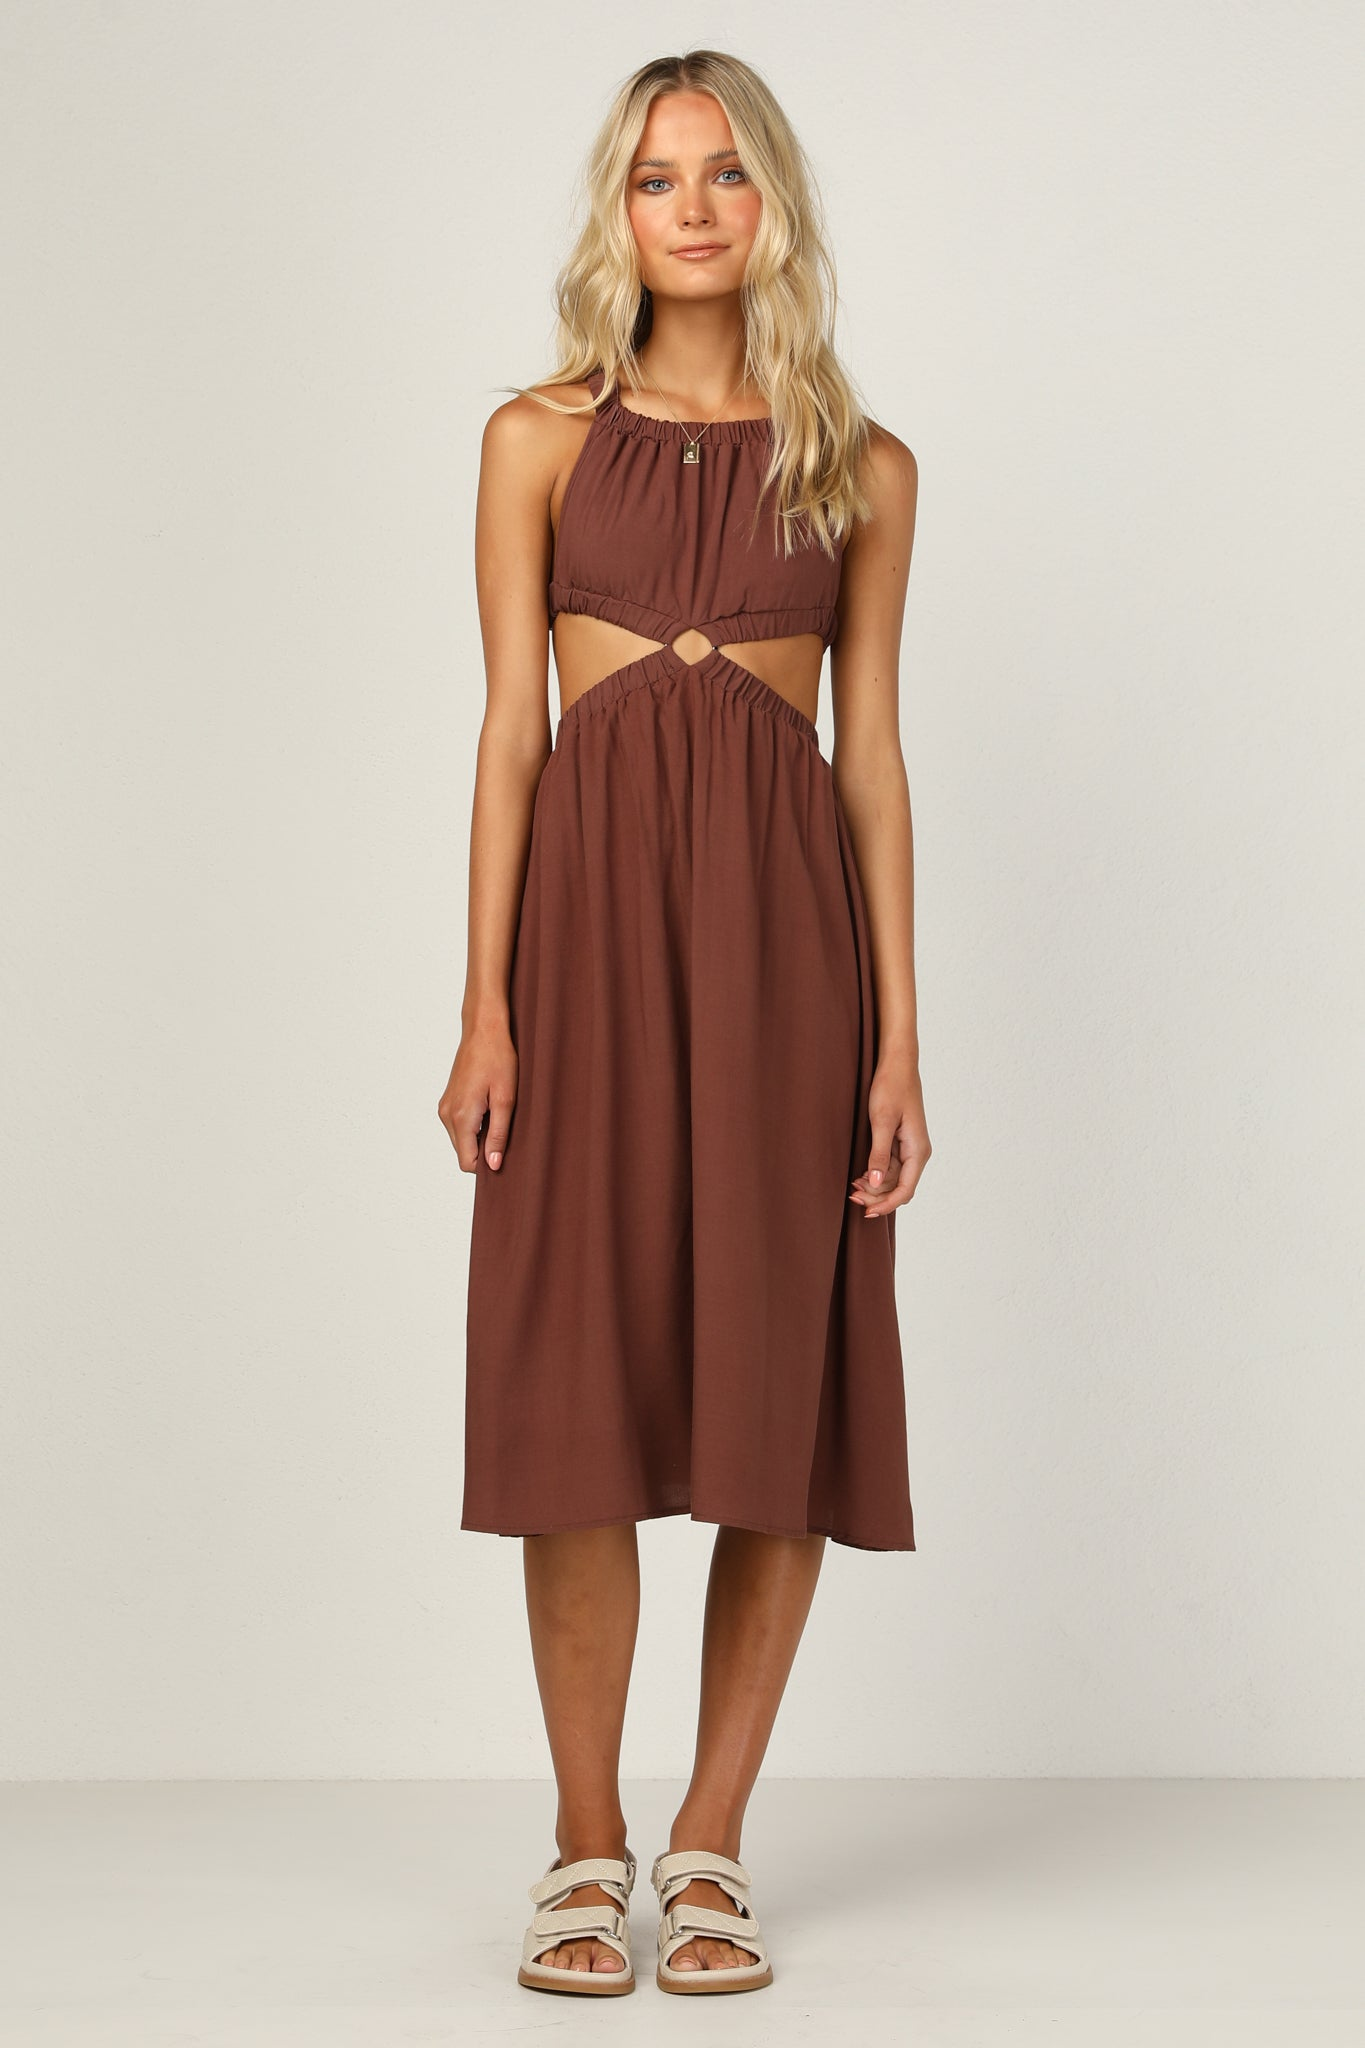 Jordan Dress (Chocolate)